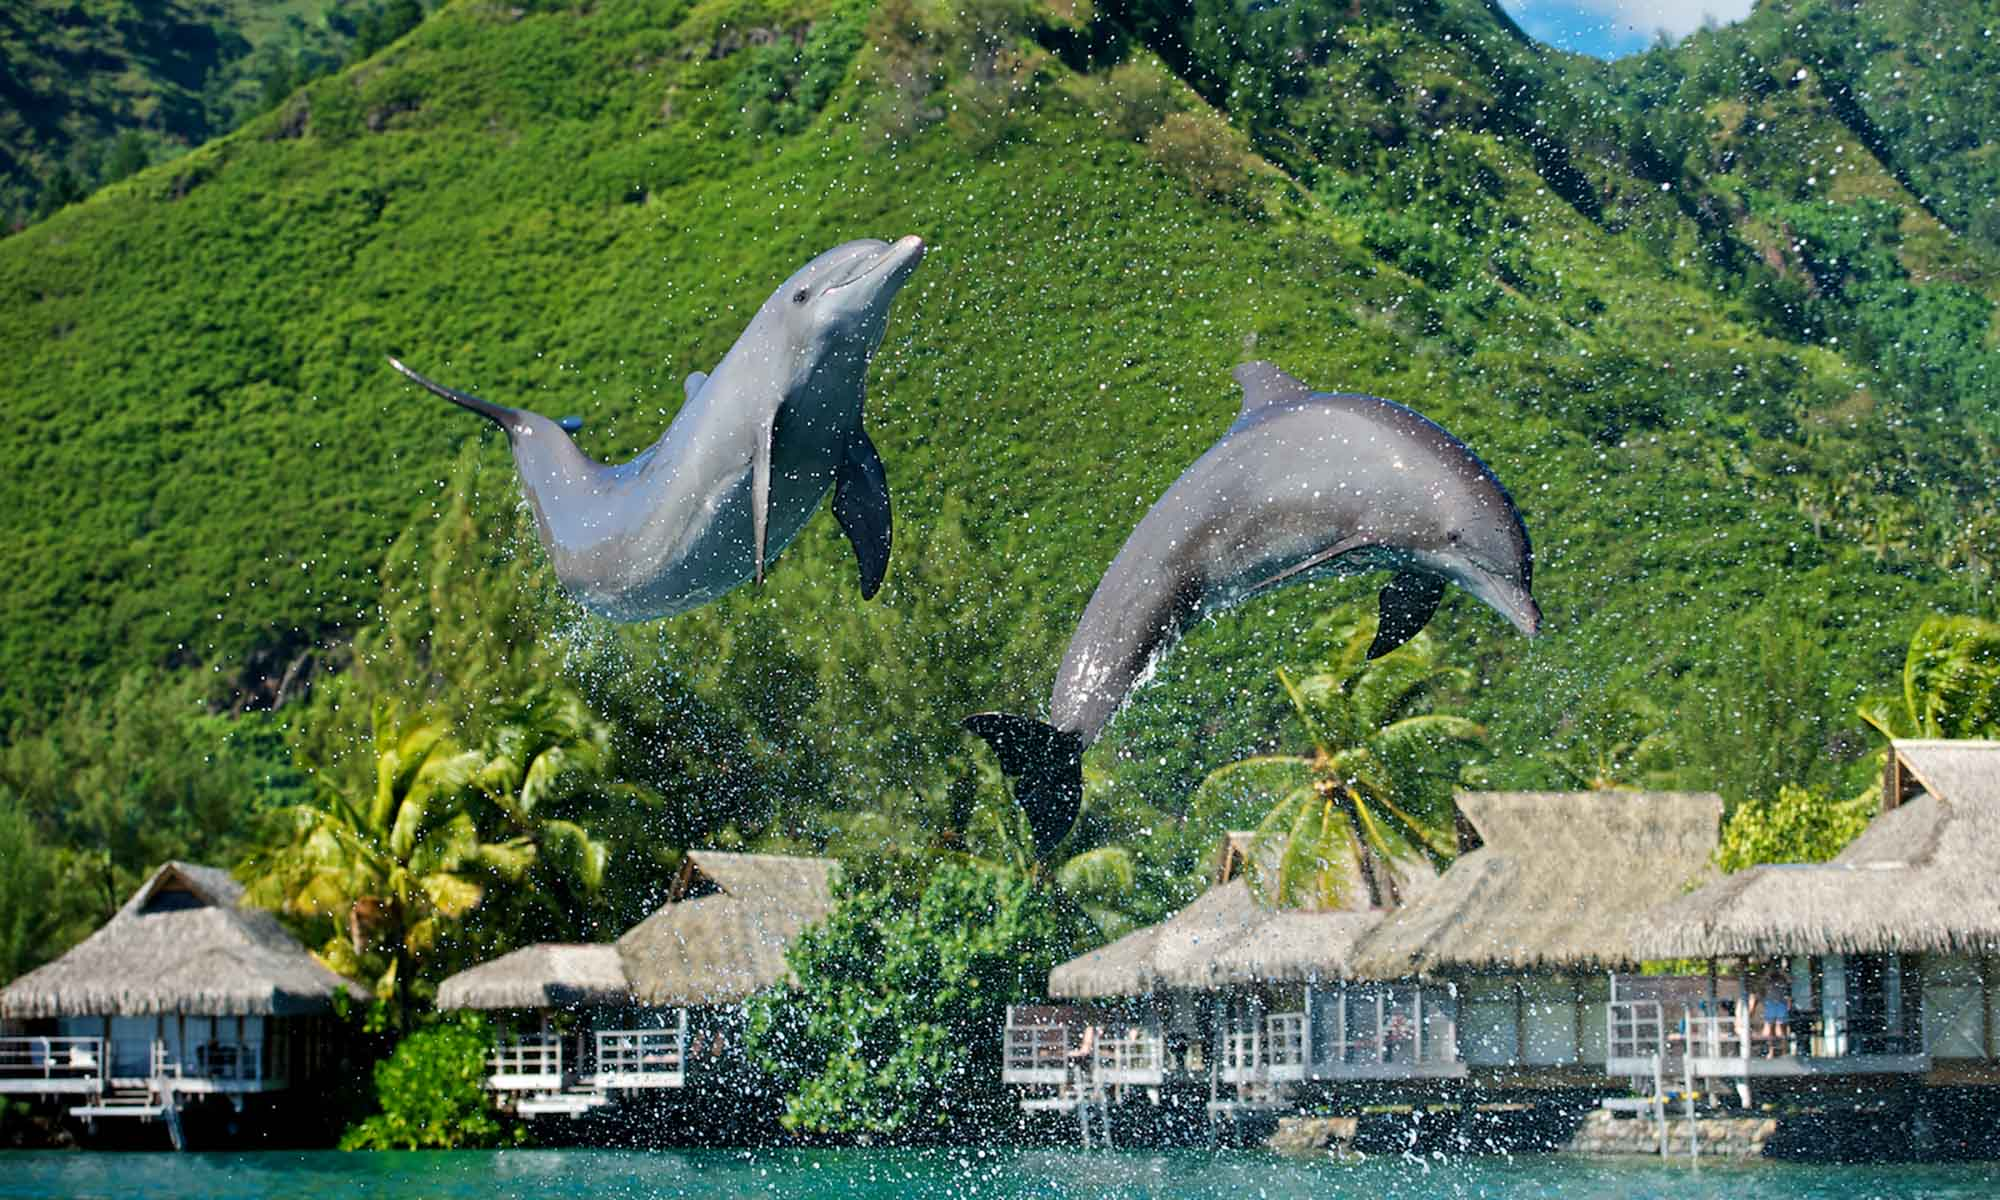 InterContinental Moorea Resort & Spa, Moorea Dolphin Center